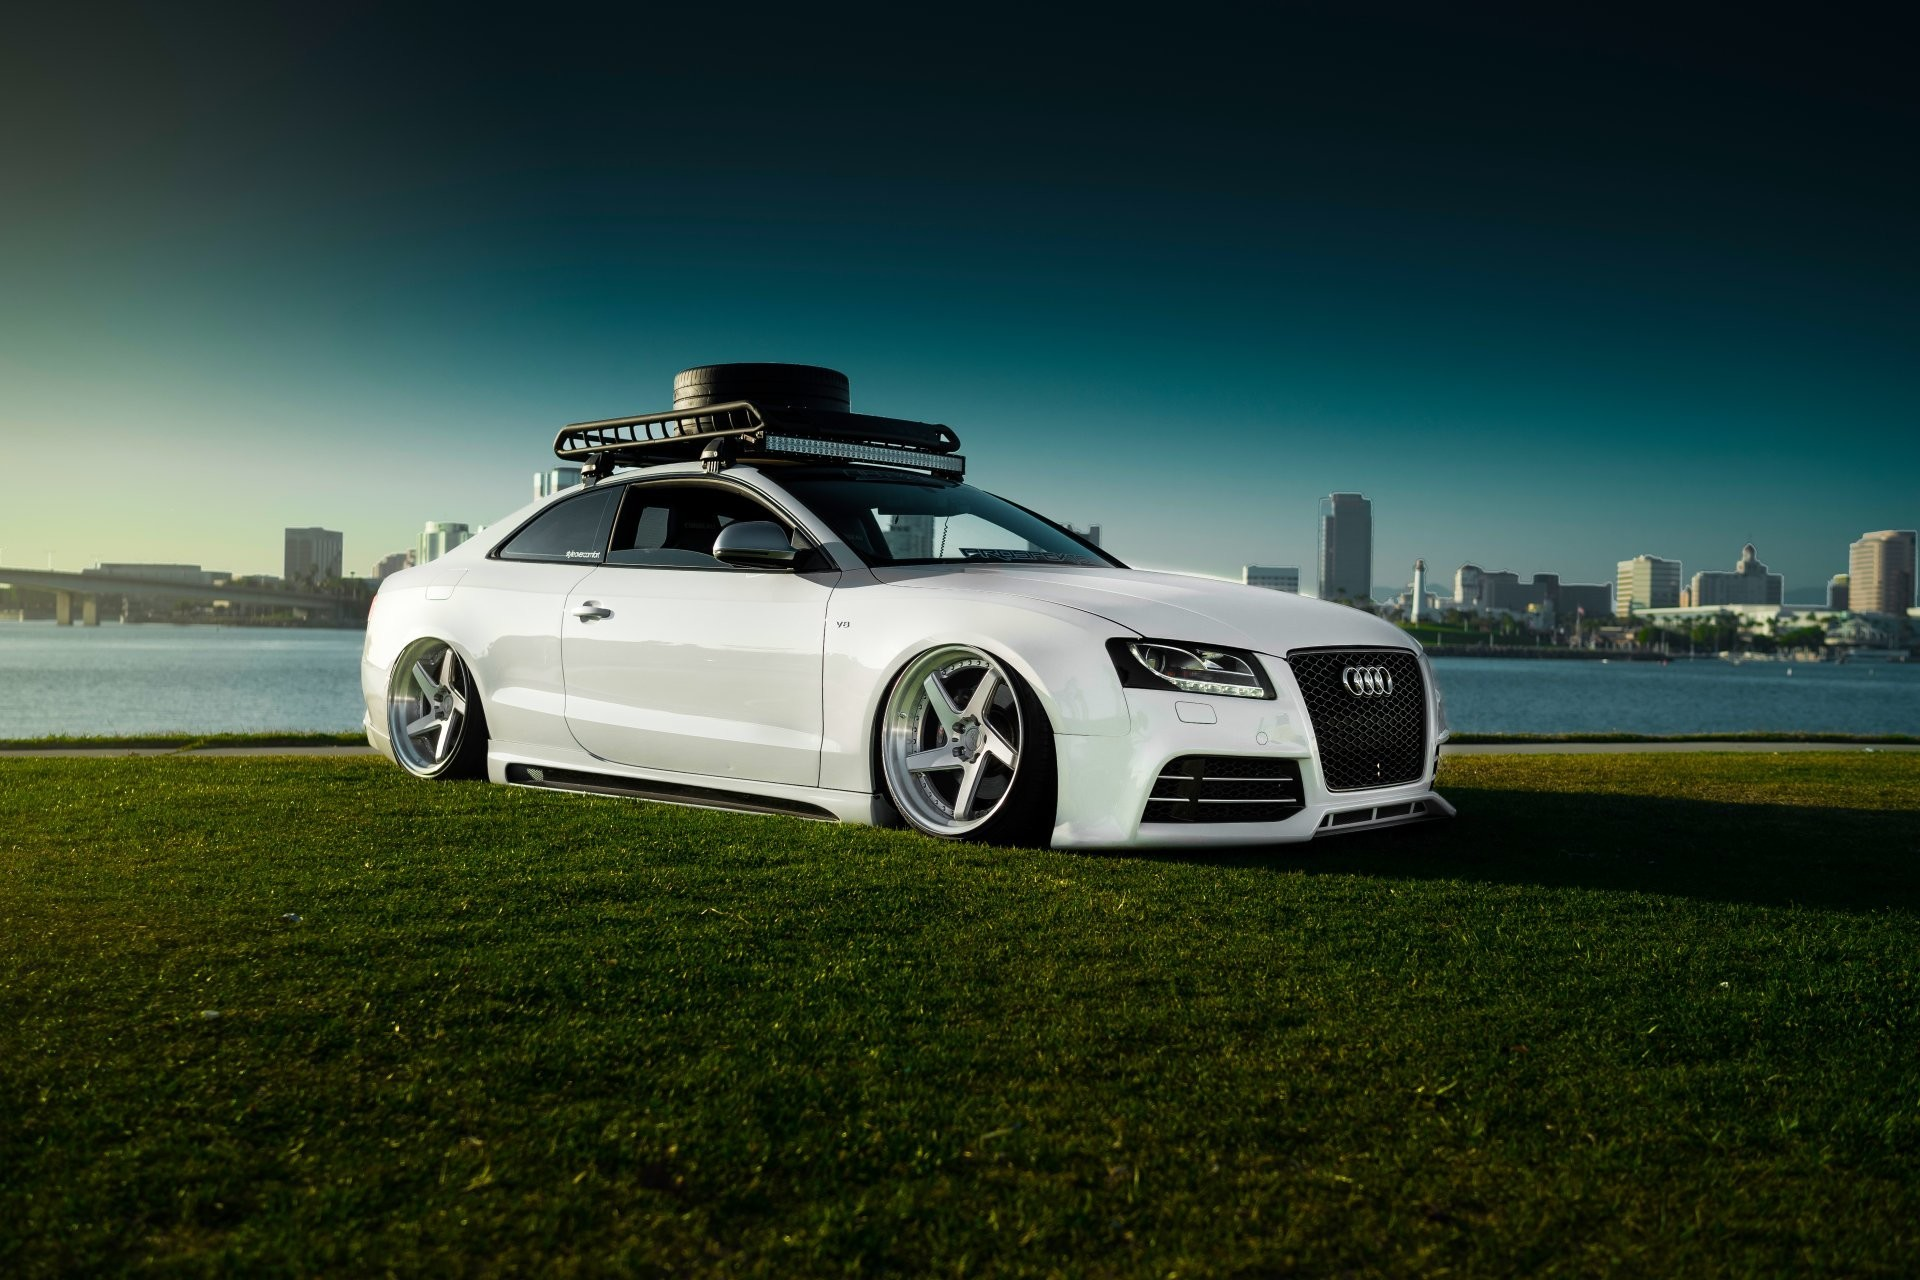 Stance nation wallpaper 70 images - Car wallpapers for galaxy s5 ...